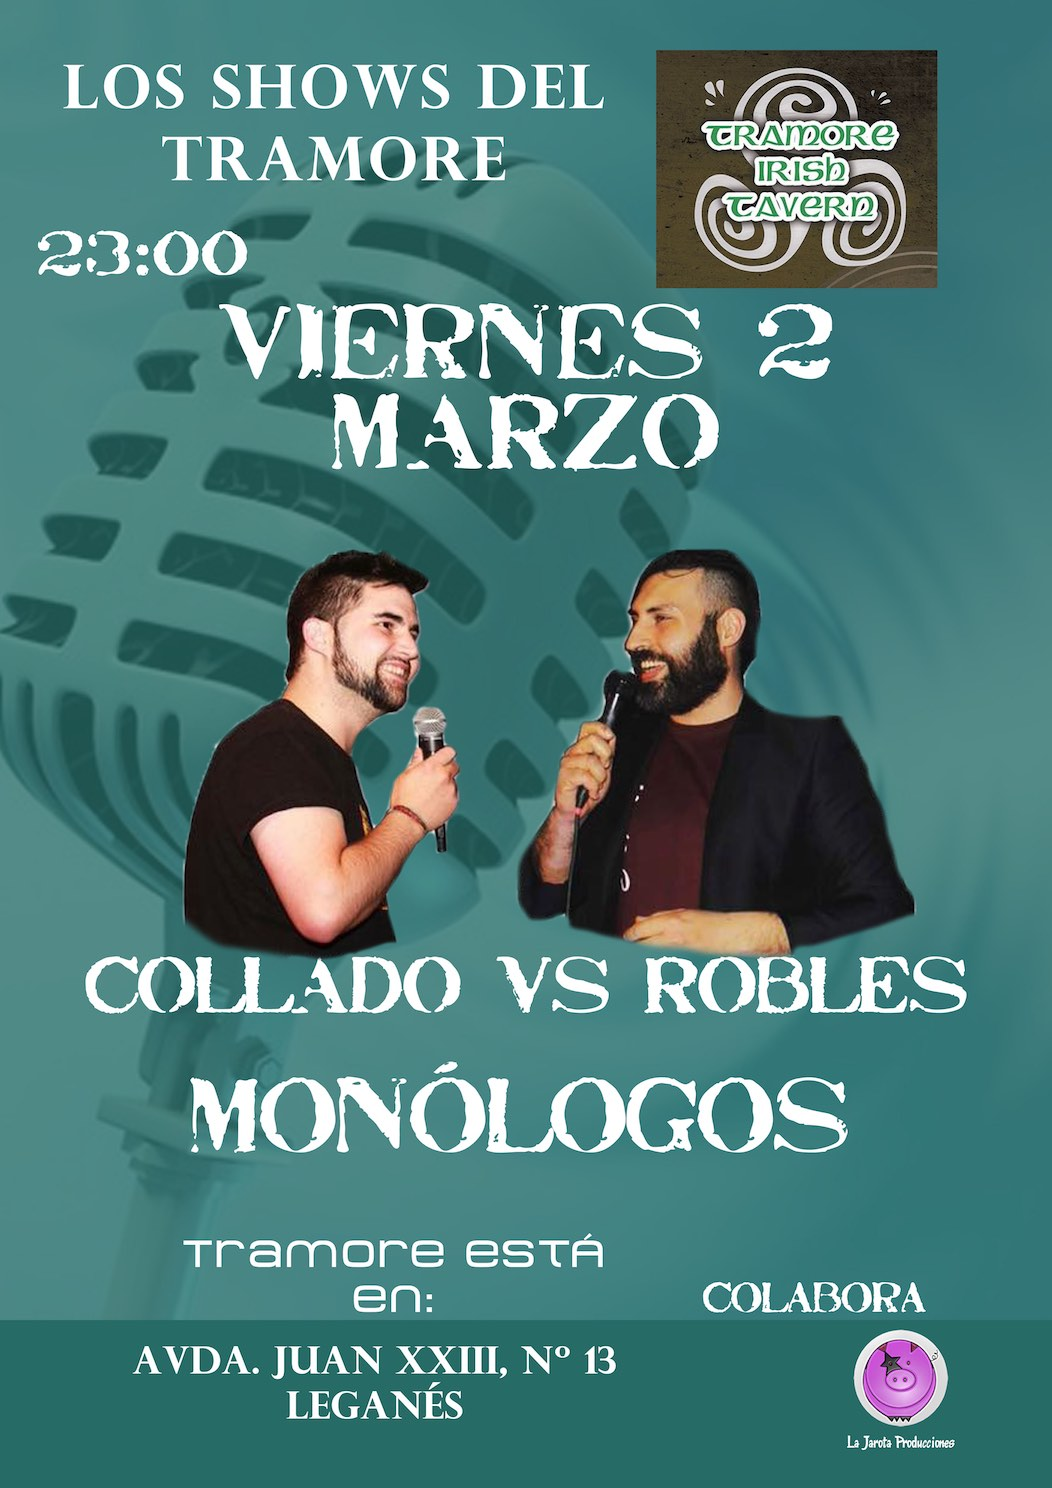 Tramore Irish Tavern: Collado vs Robles